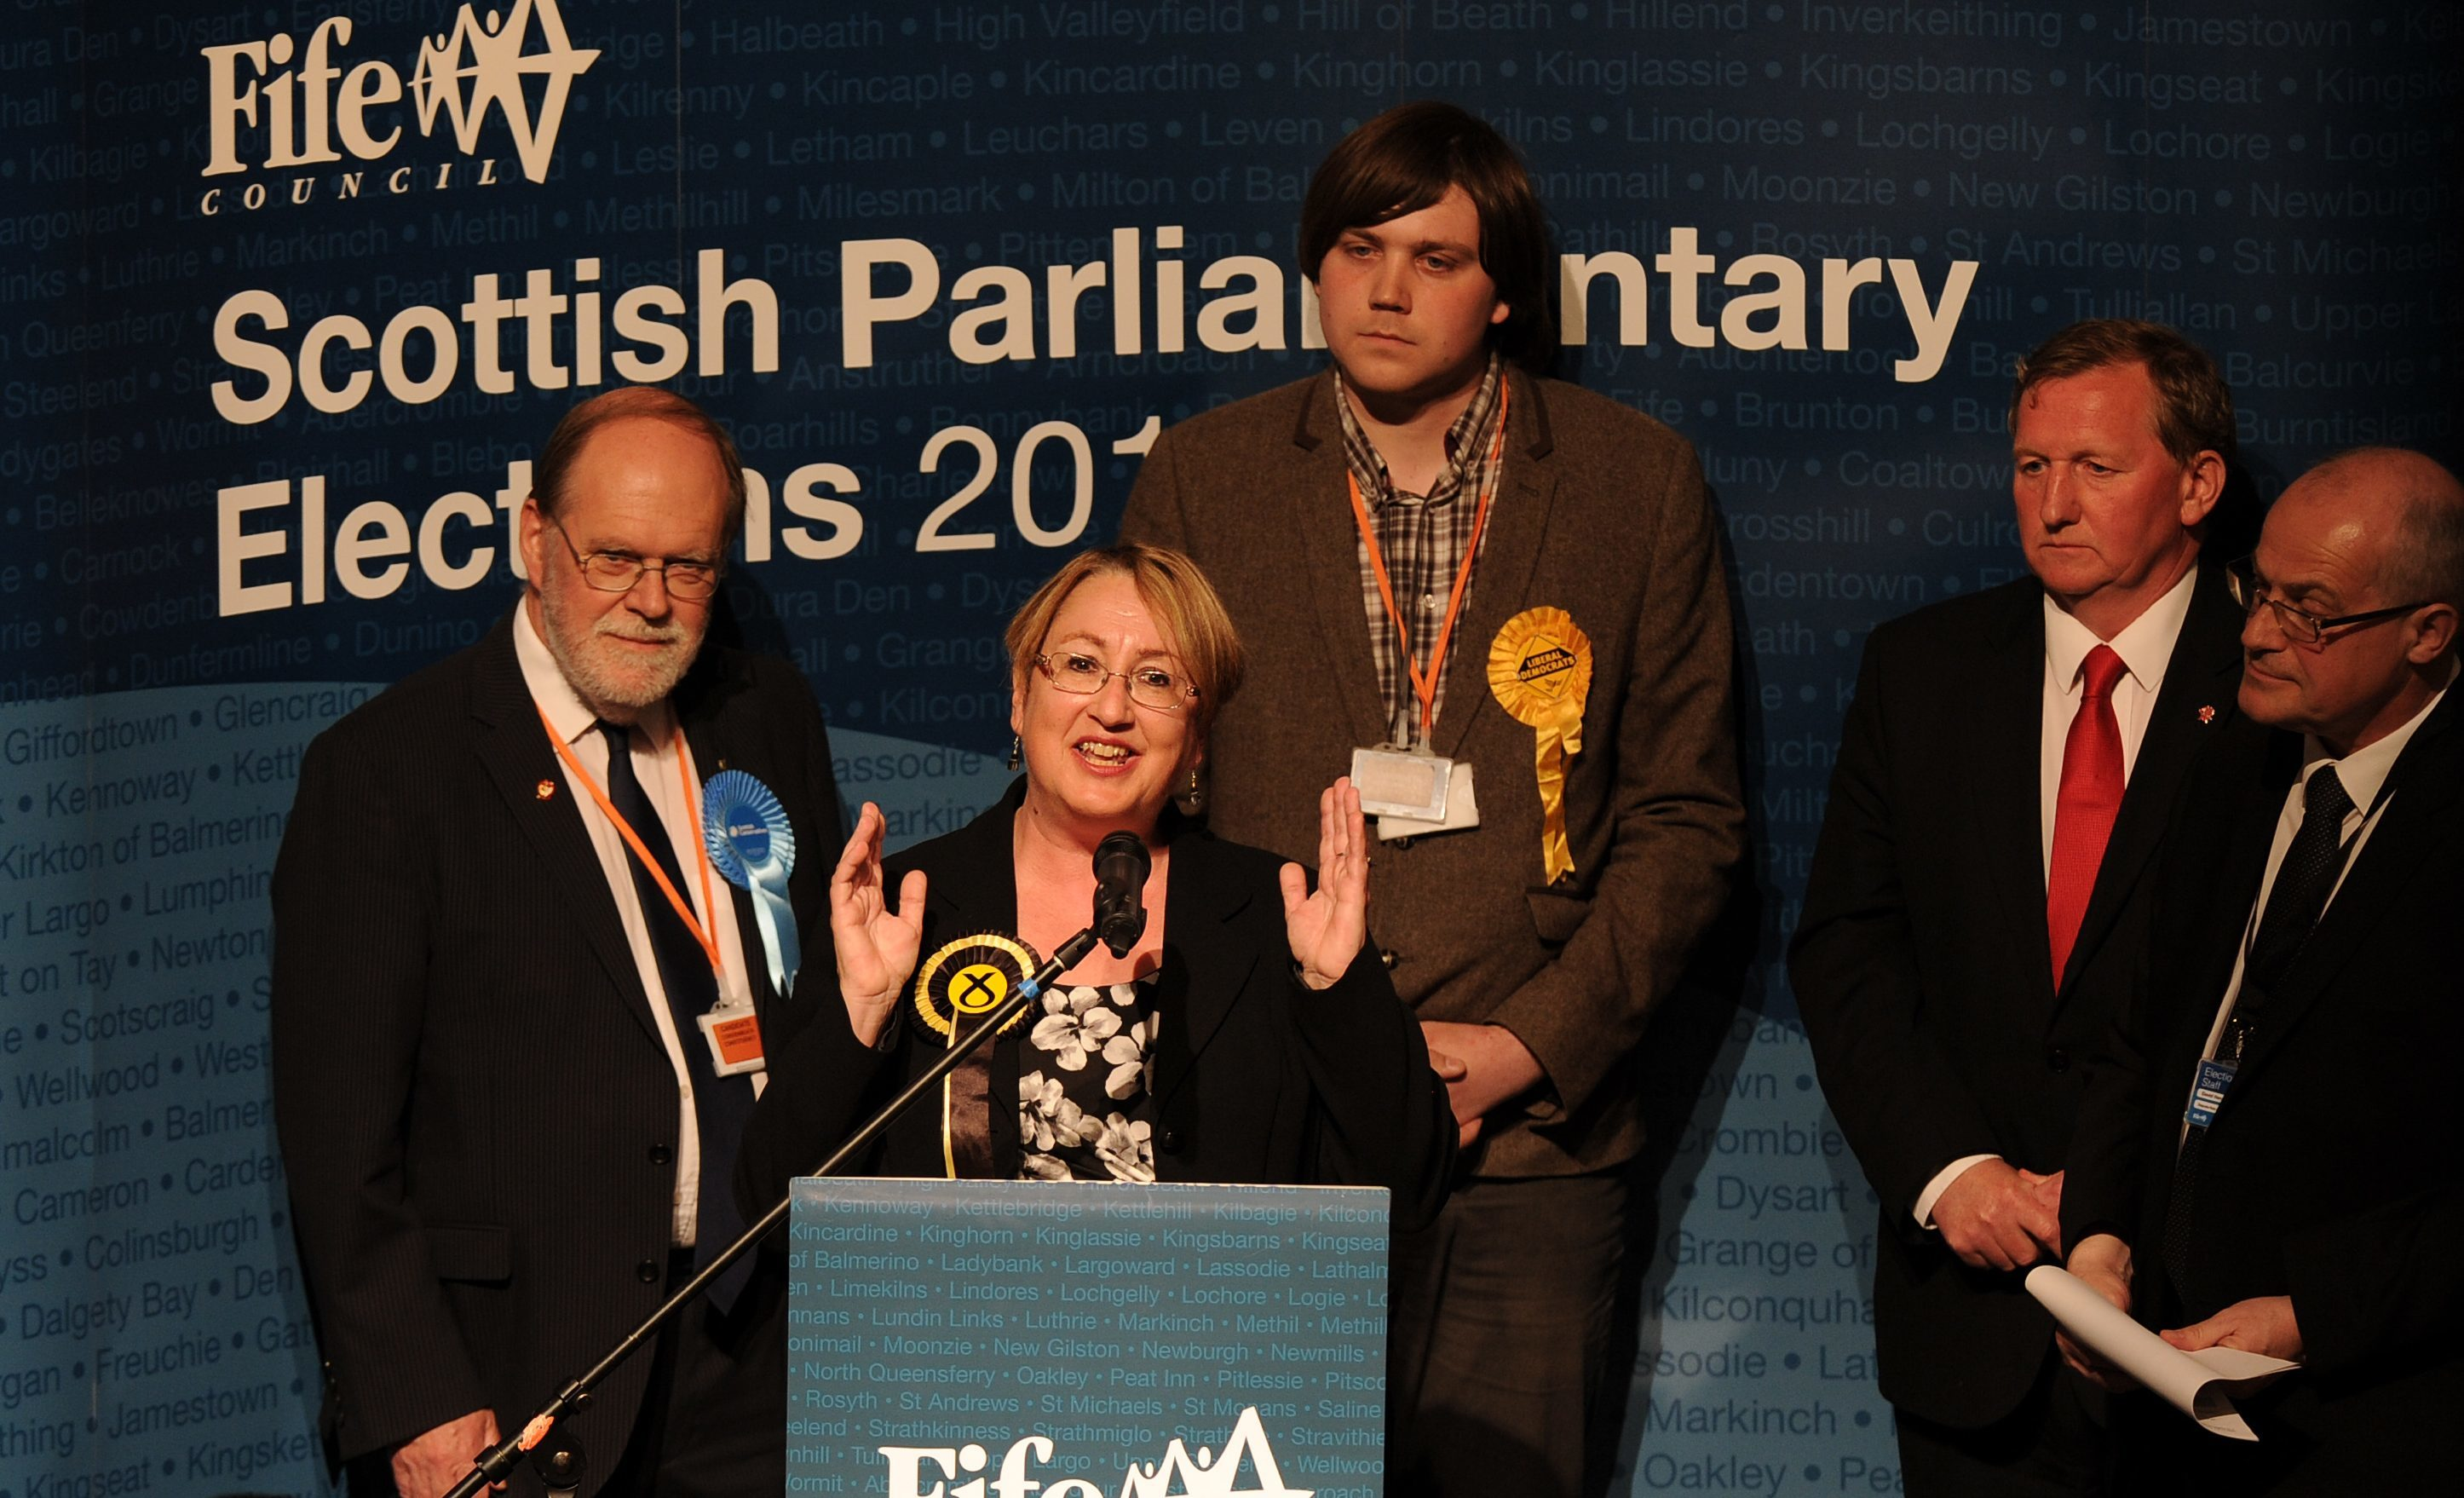 Annabelle Ewing of the SNP claimed the Cowdenbeath seat from Labour's Alex Rowley.